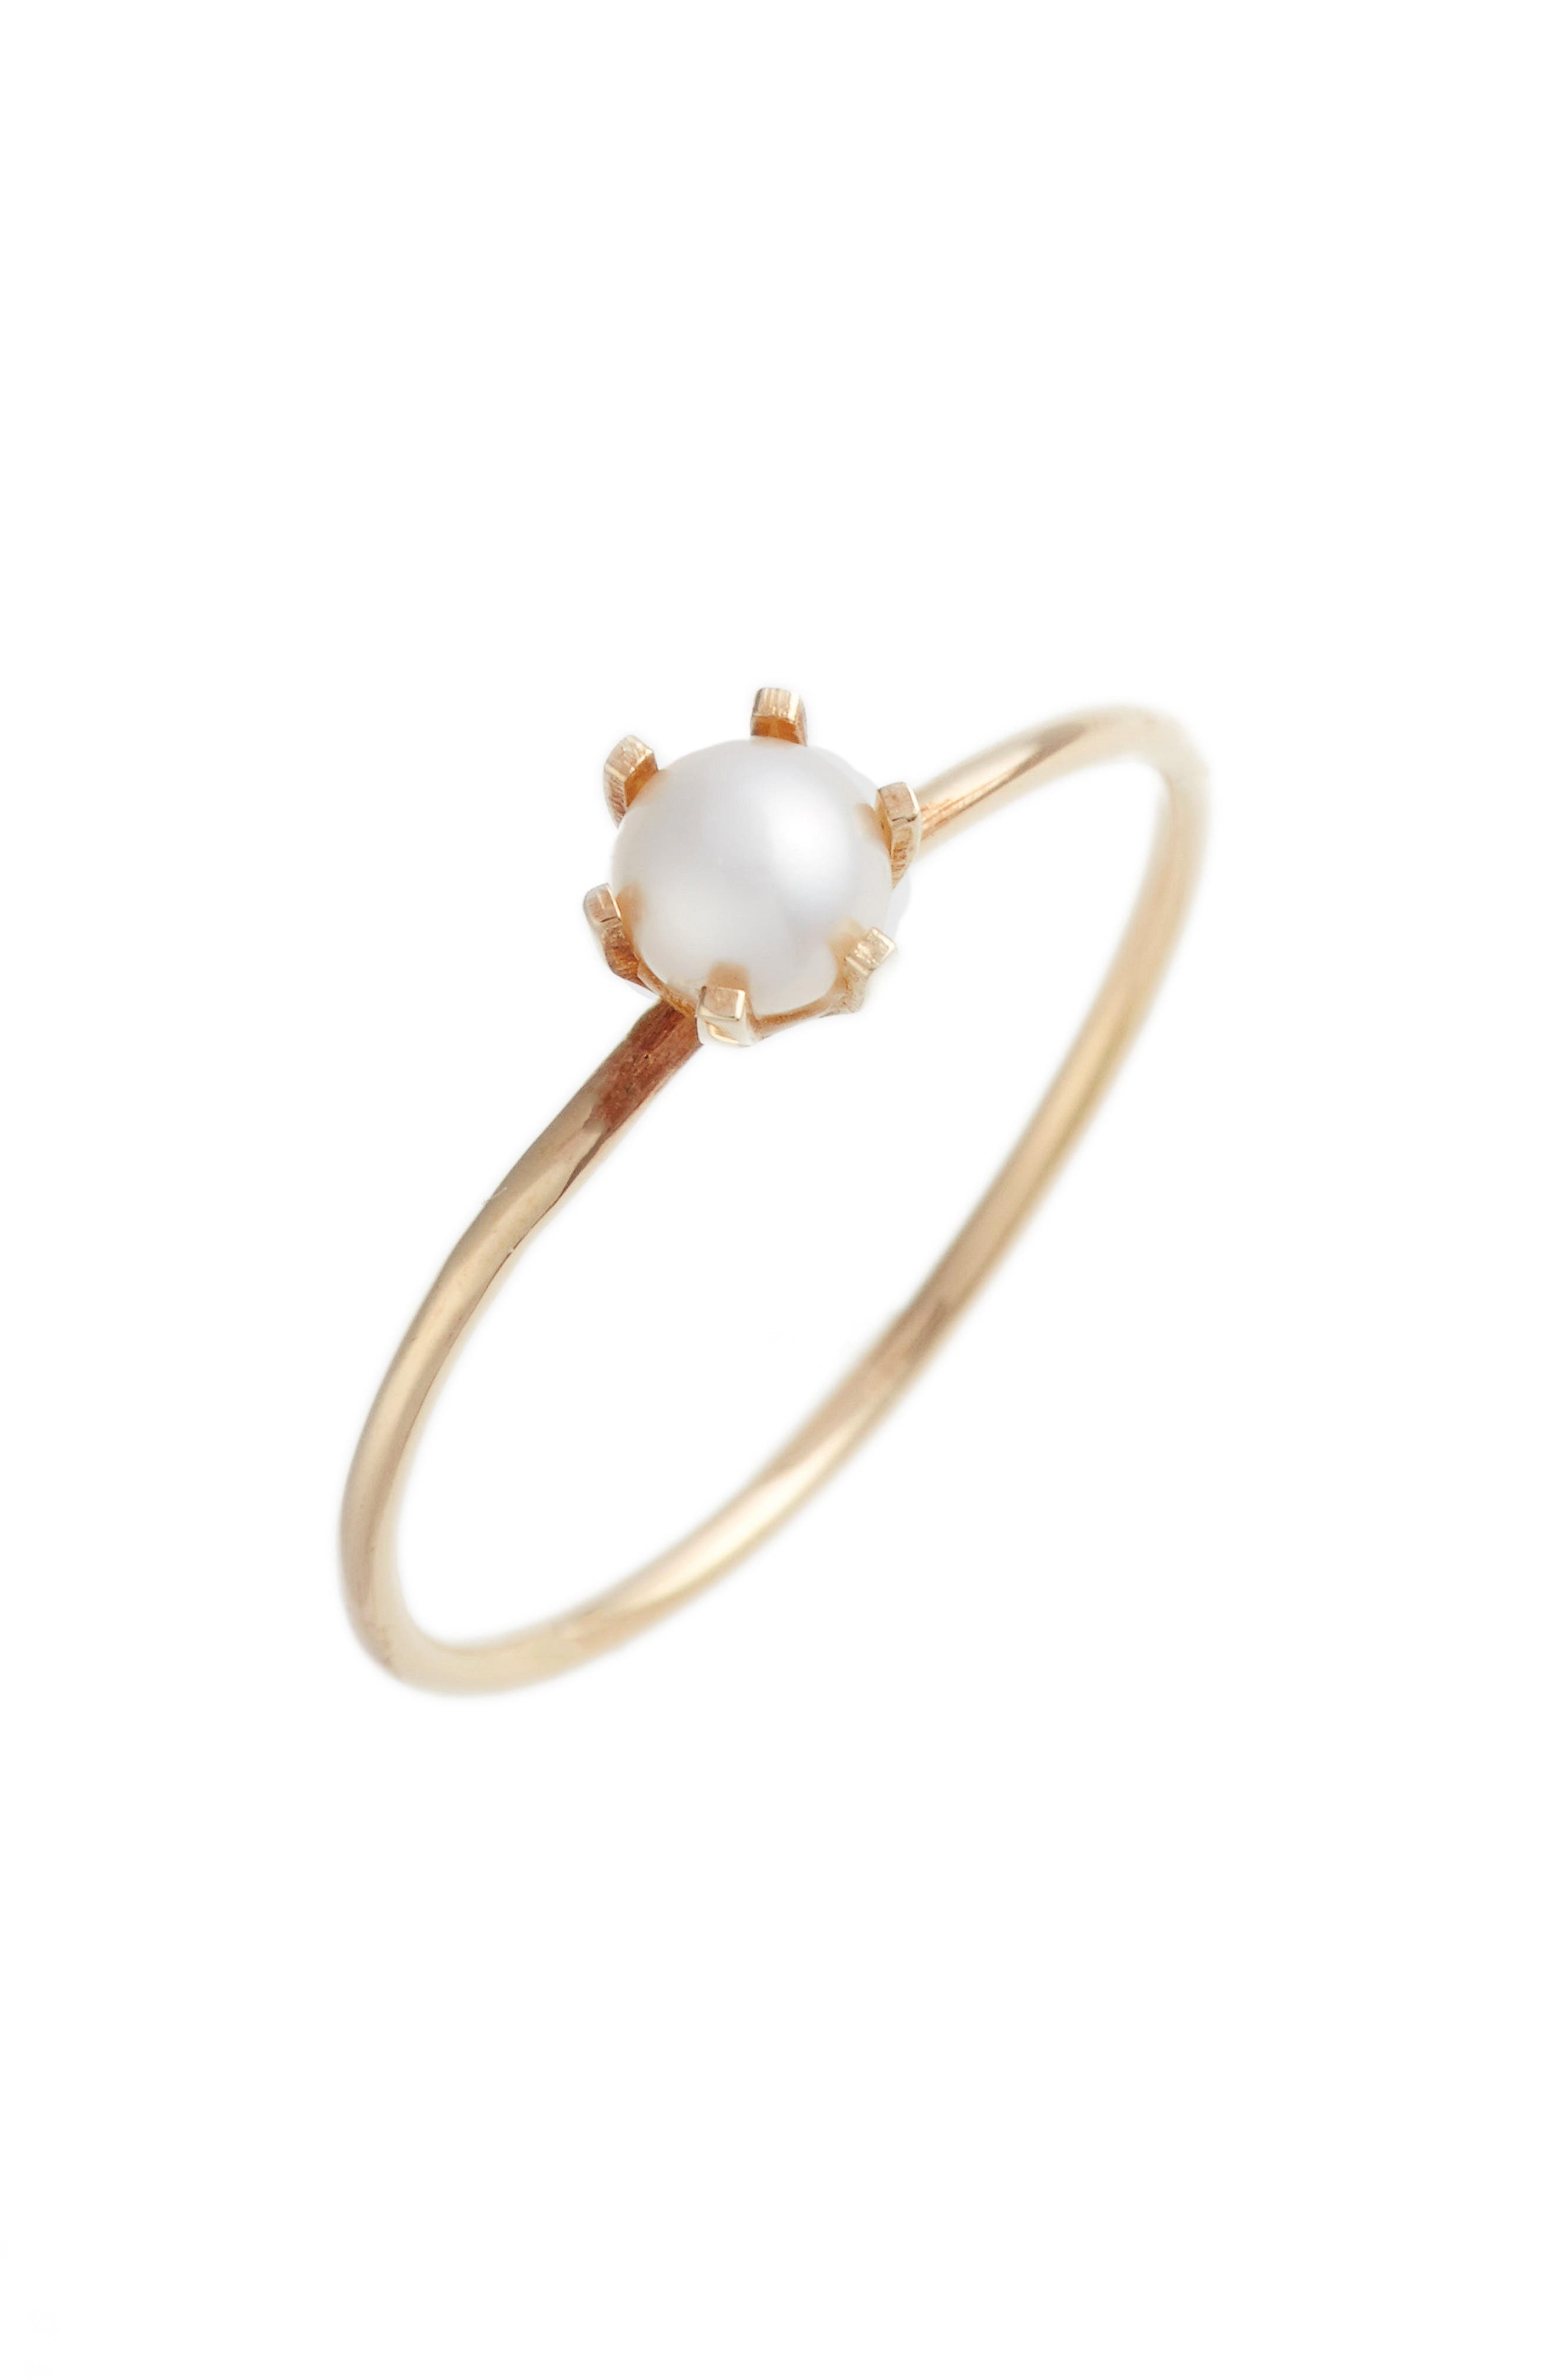 Pearl Solitaire Ring,                             Main thumbnail 1, color,                             YELLOW GOLD/ WHITE PEARL